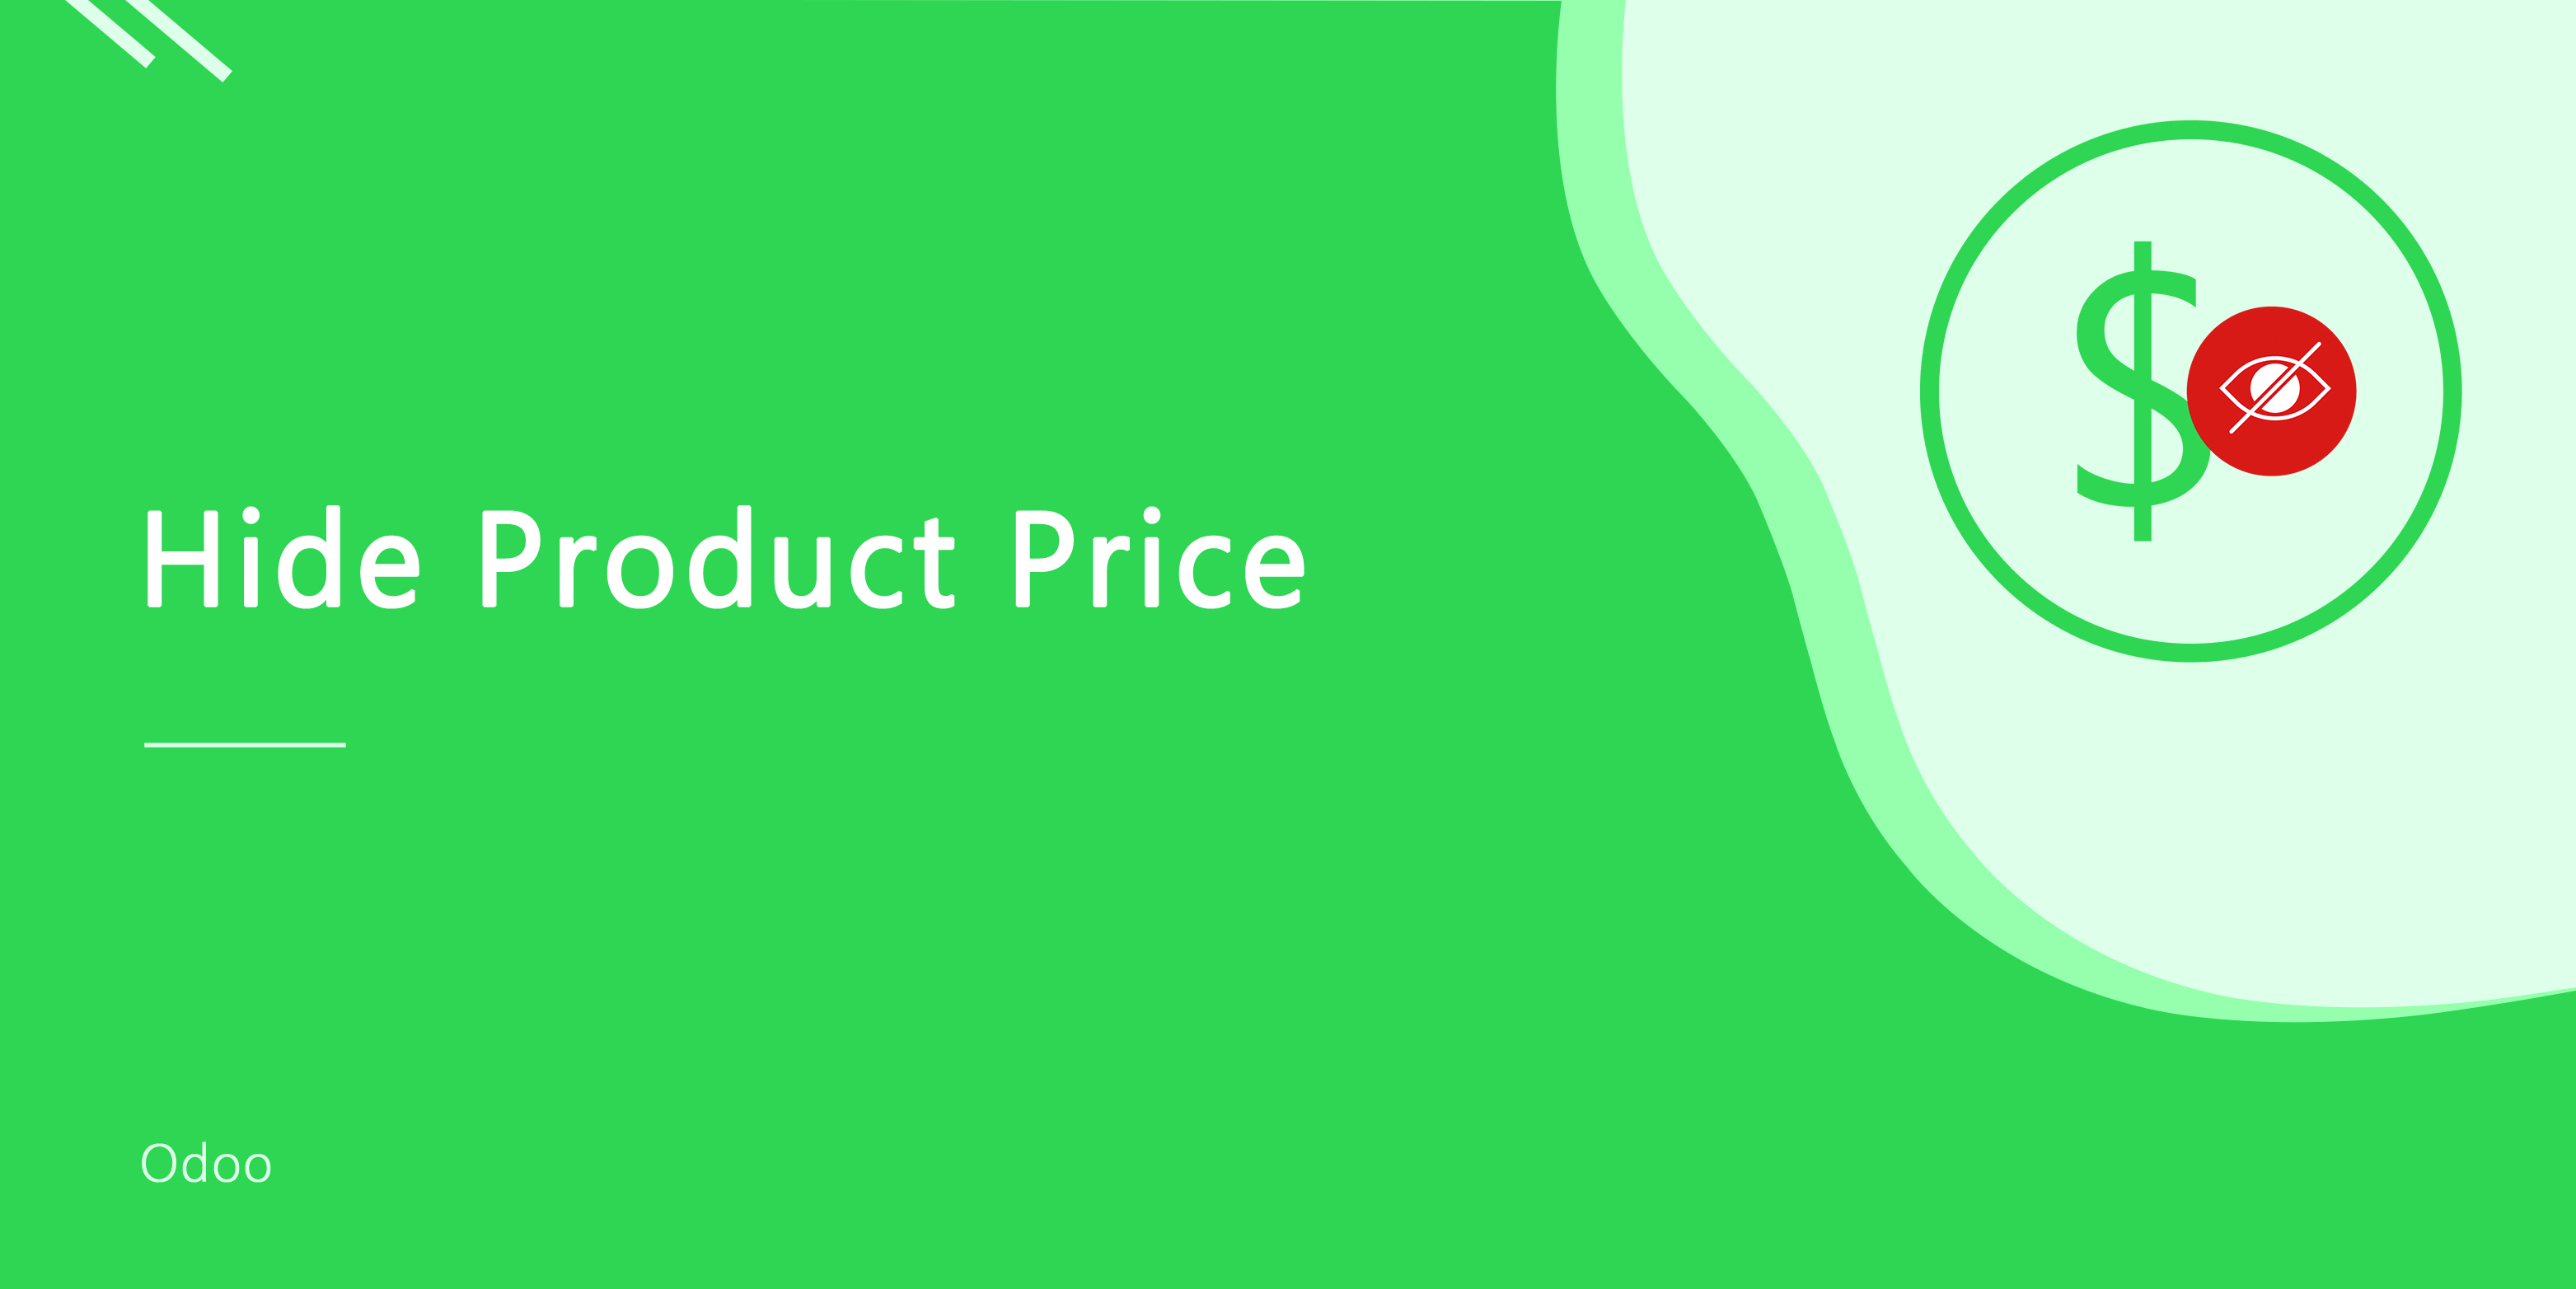 Hide Product Price